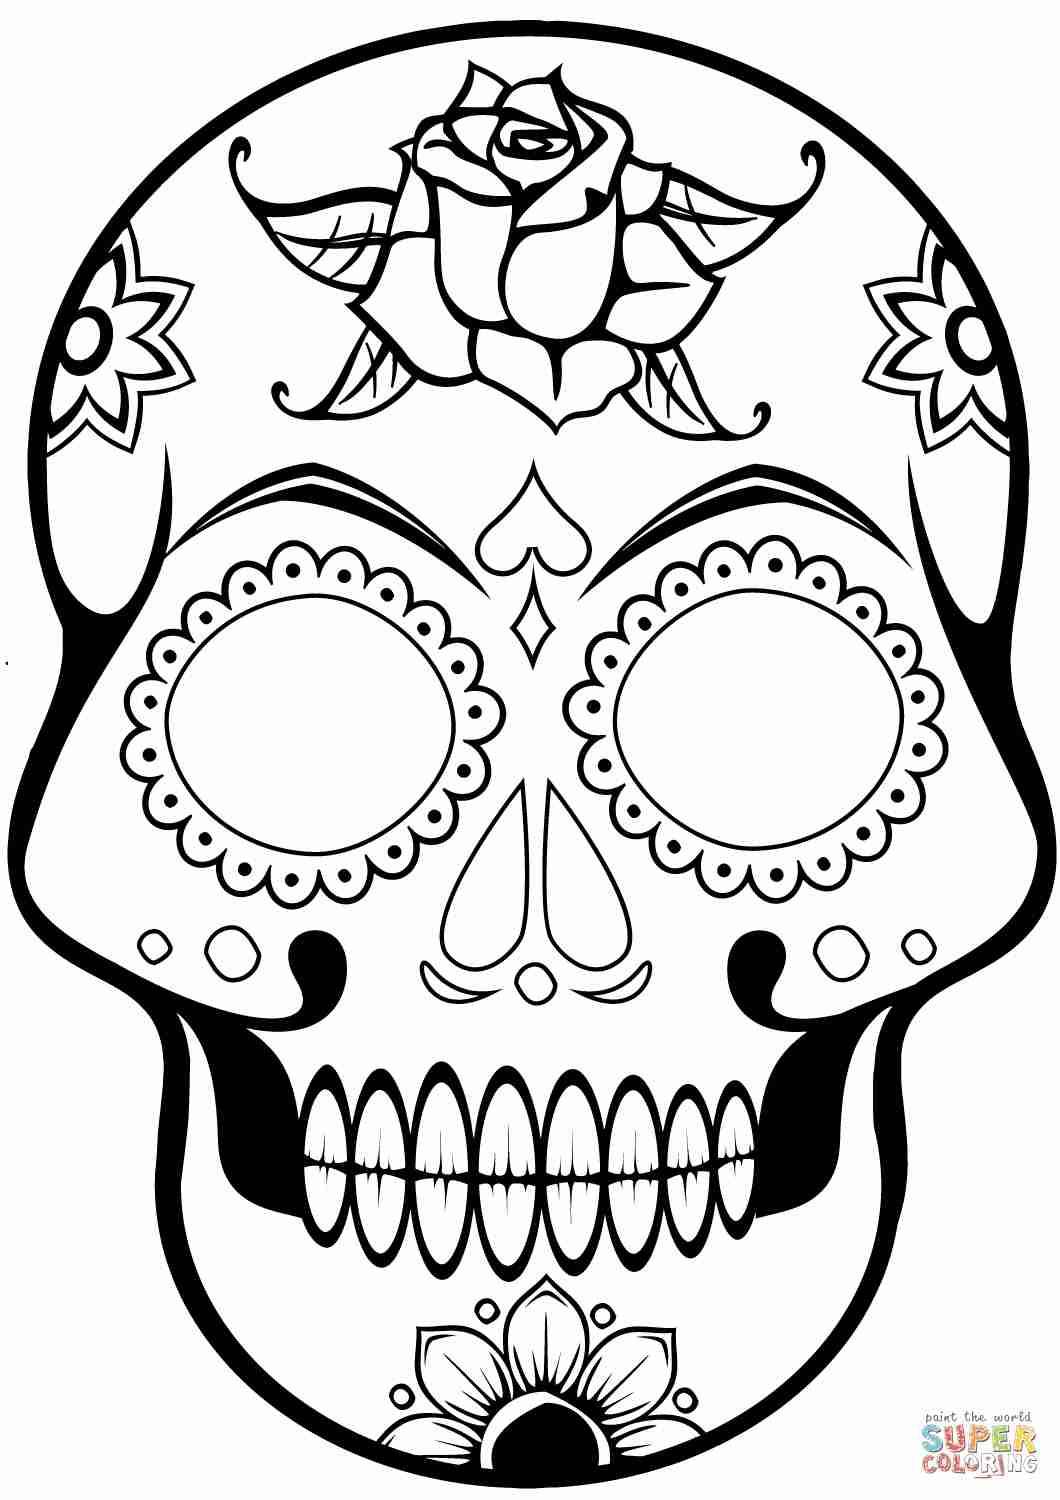 Pirate Skull Coloring Pages At Getcolorings